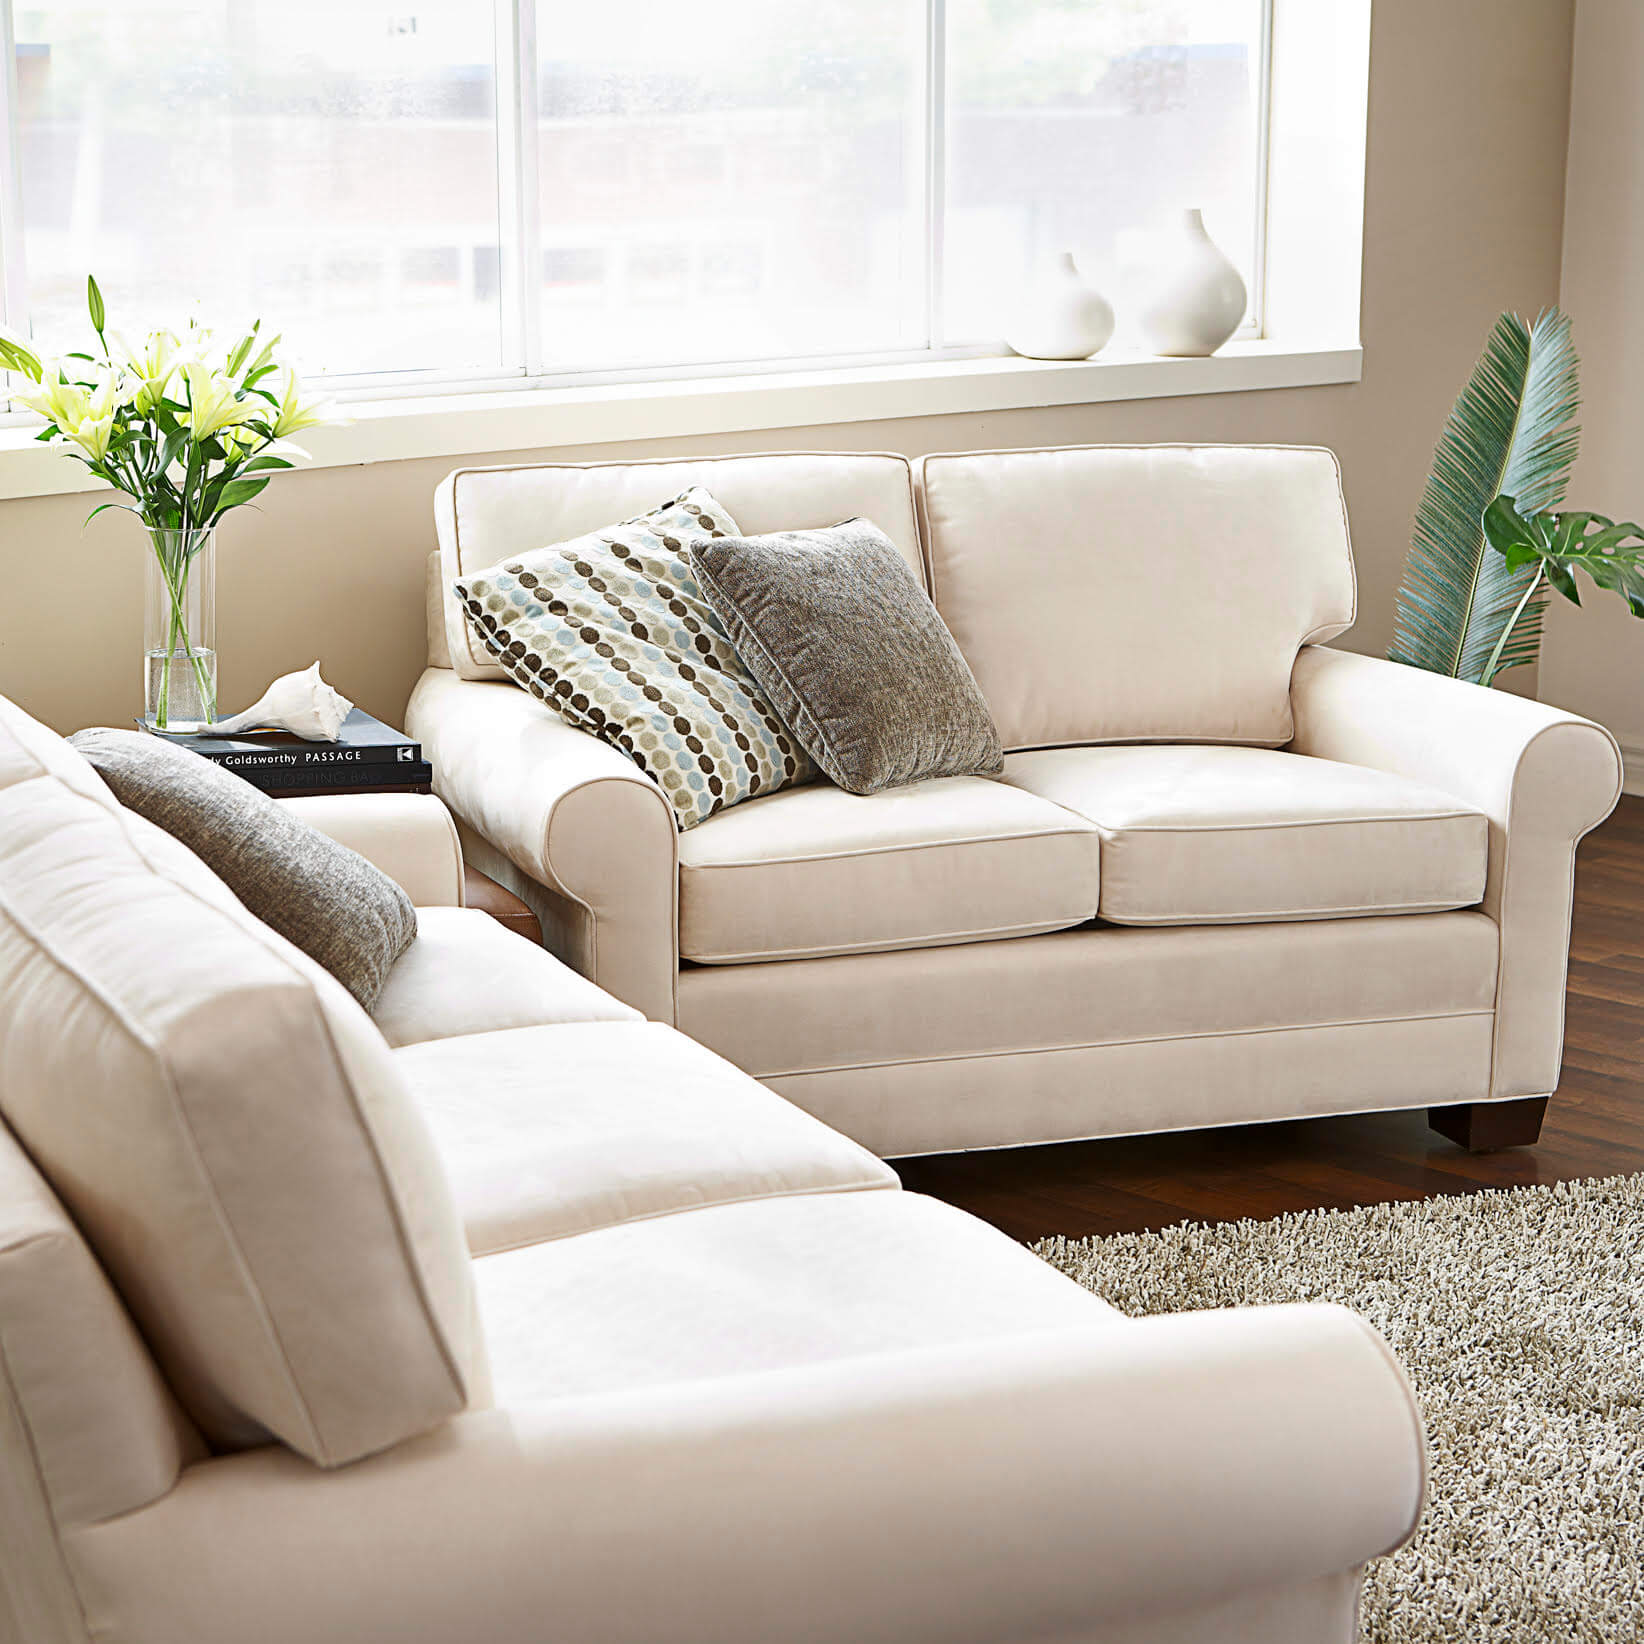 Interior Design Toronto Spotlight On Markham Furniture Interior